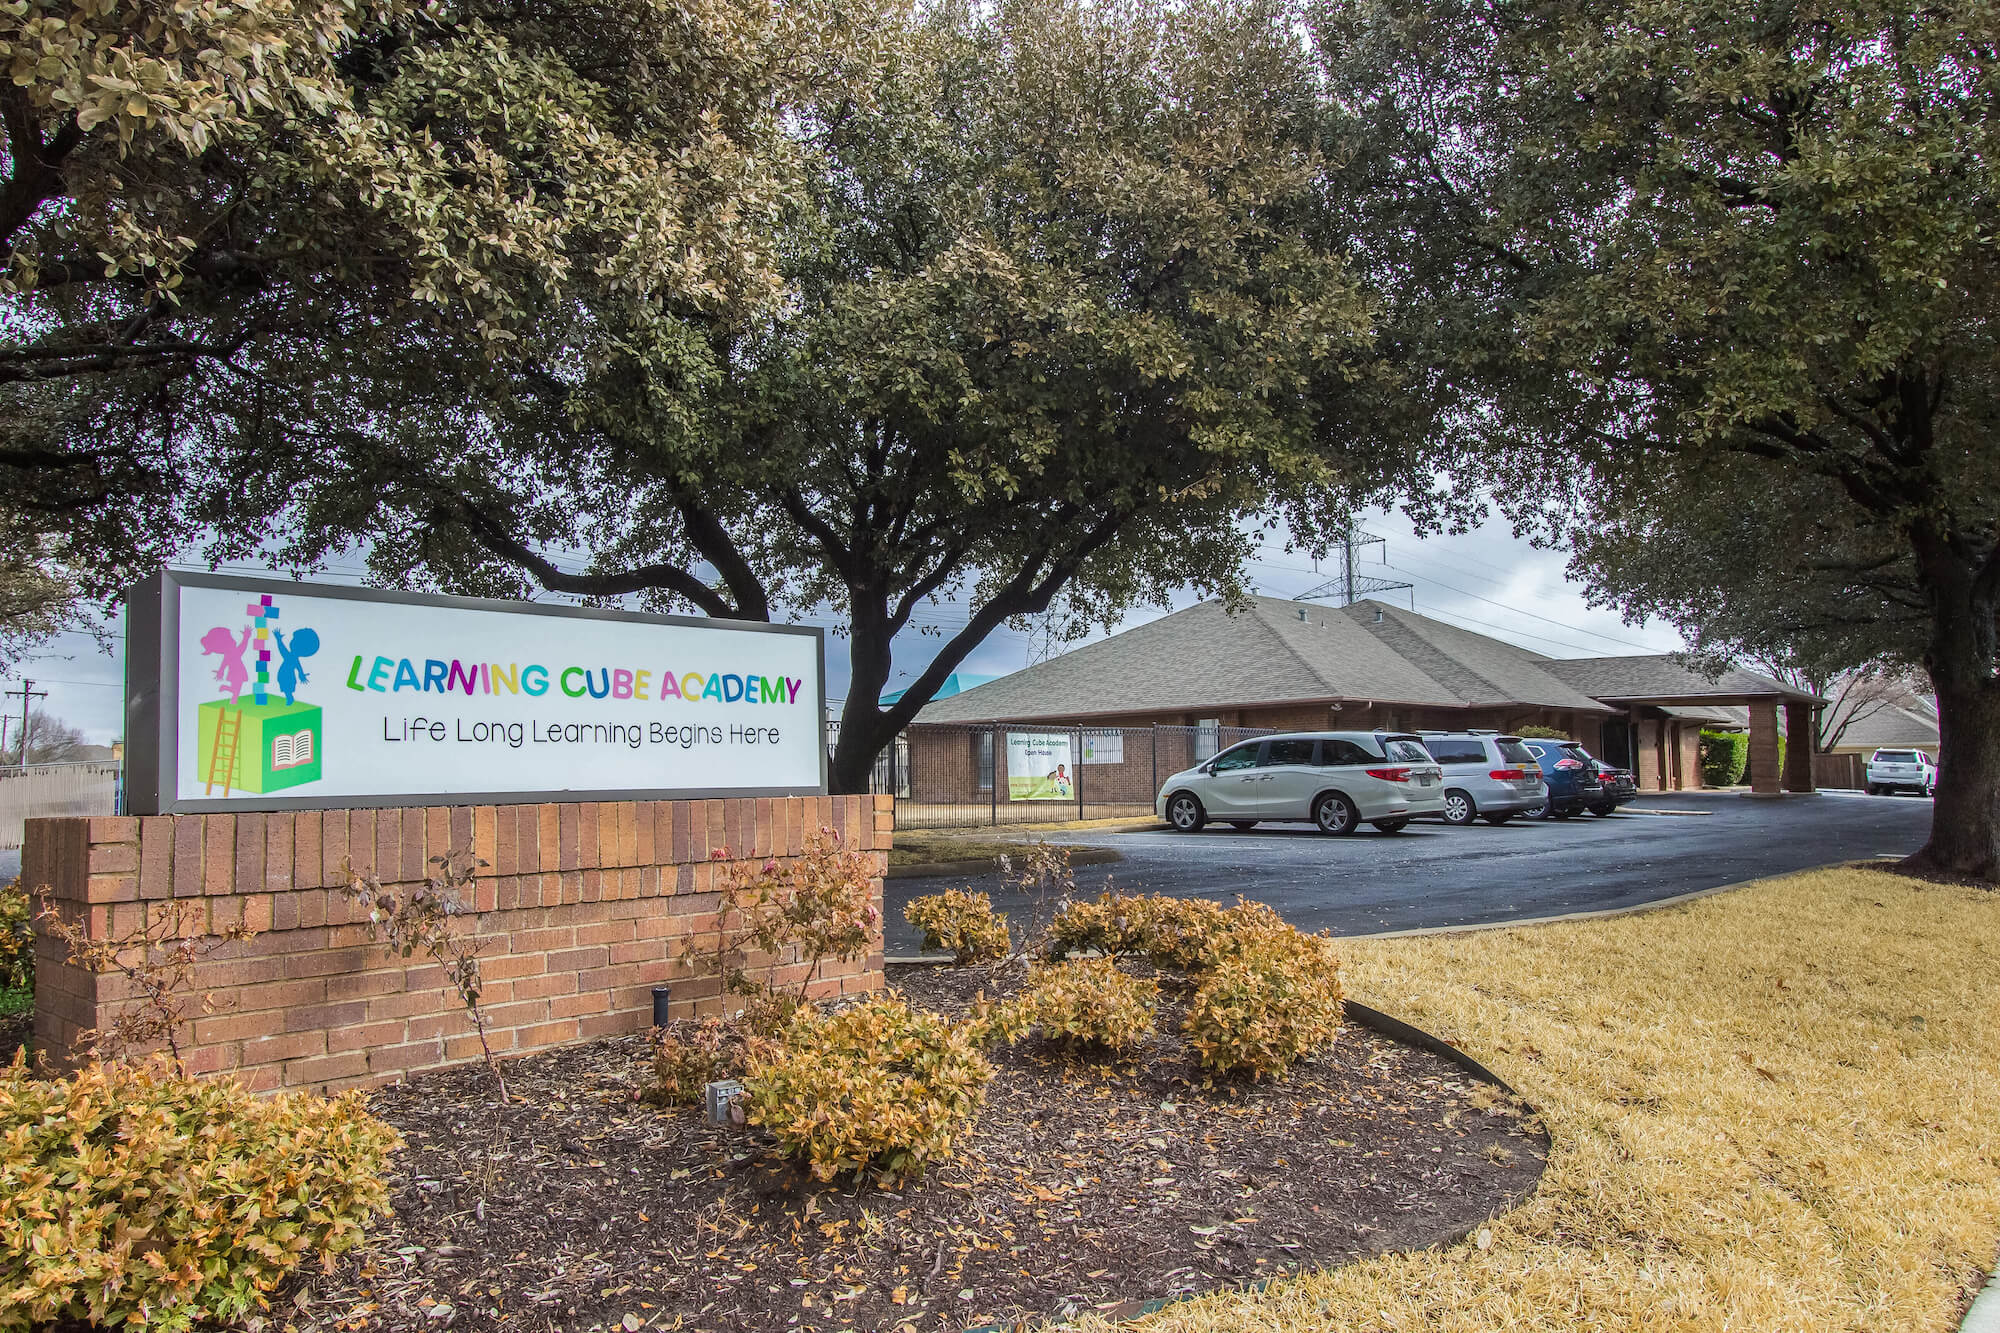 Learning-Cube-Academy-Preschool-Plano-Texas-LCA-Best-and-Top-Teachers-Curriculum-private-school